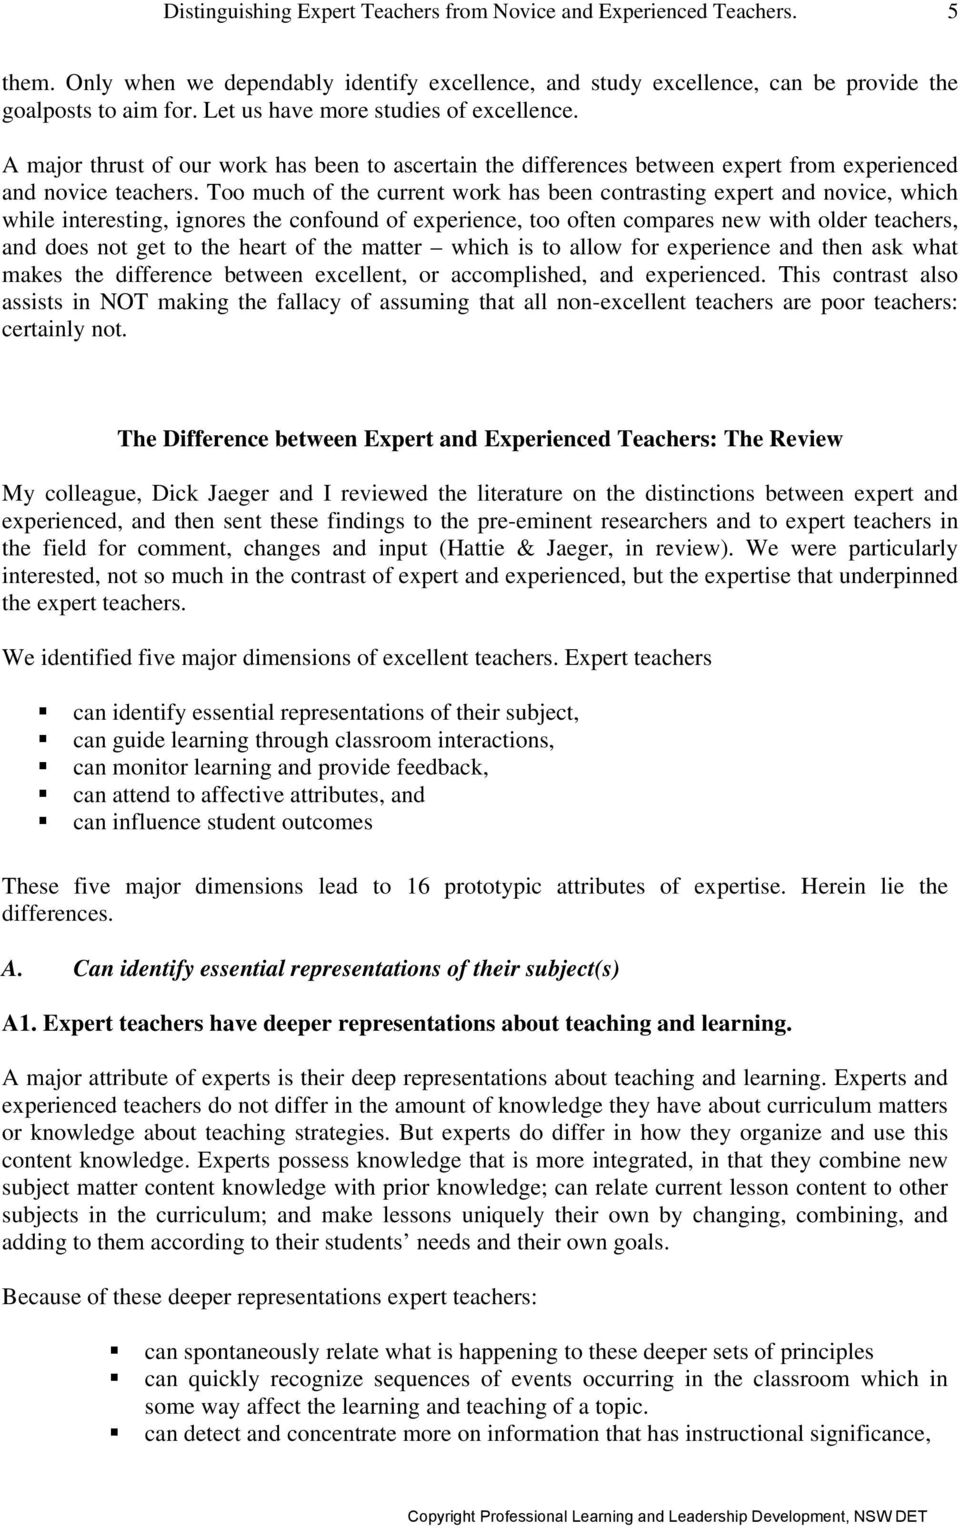 Too much of the current work has been contrasting expert and novice, which while interesting, ignores the confound of experience, too often compares new with older teachers, and does not get to the